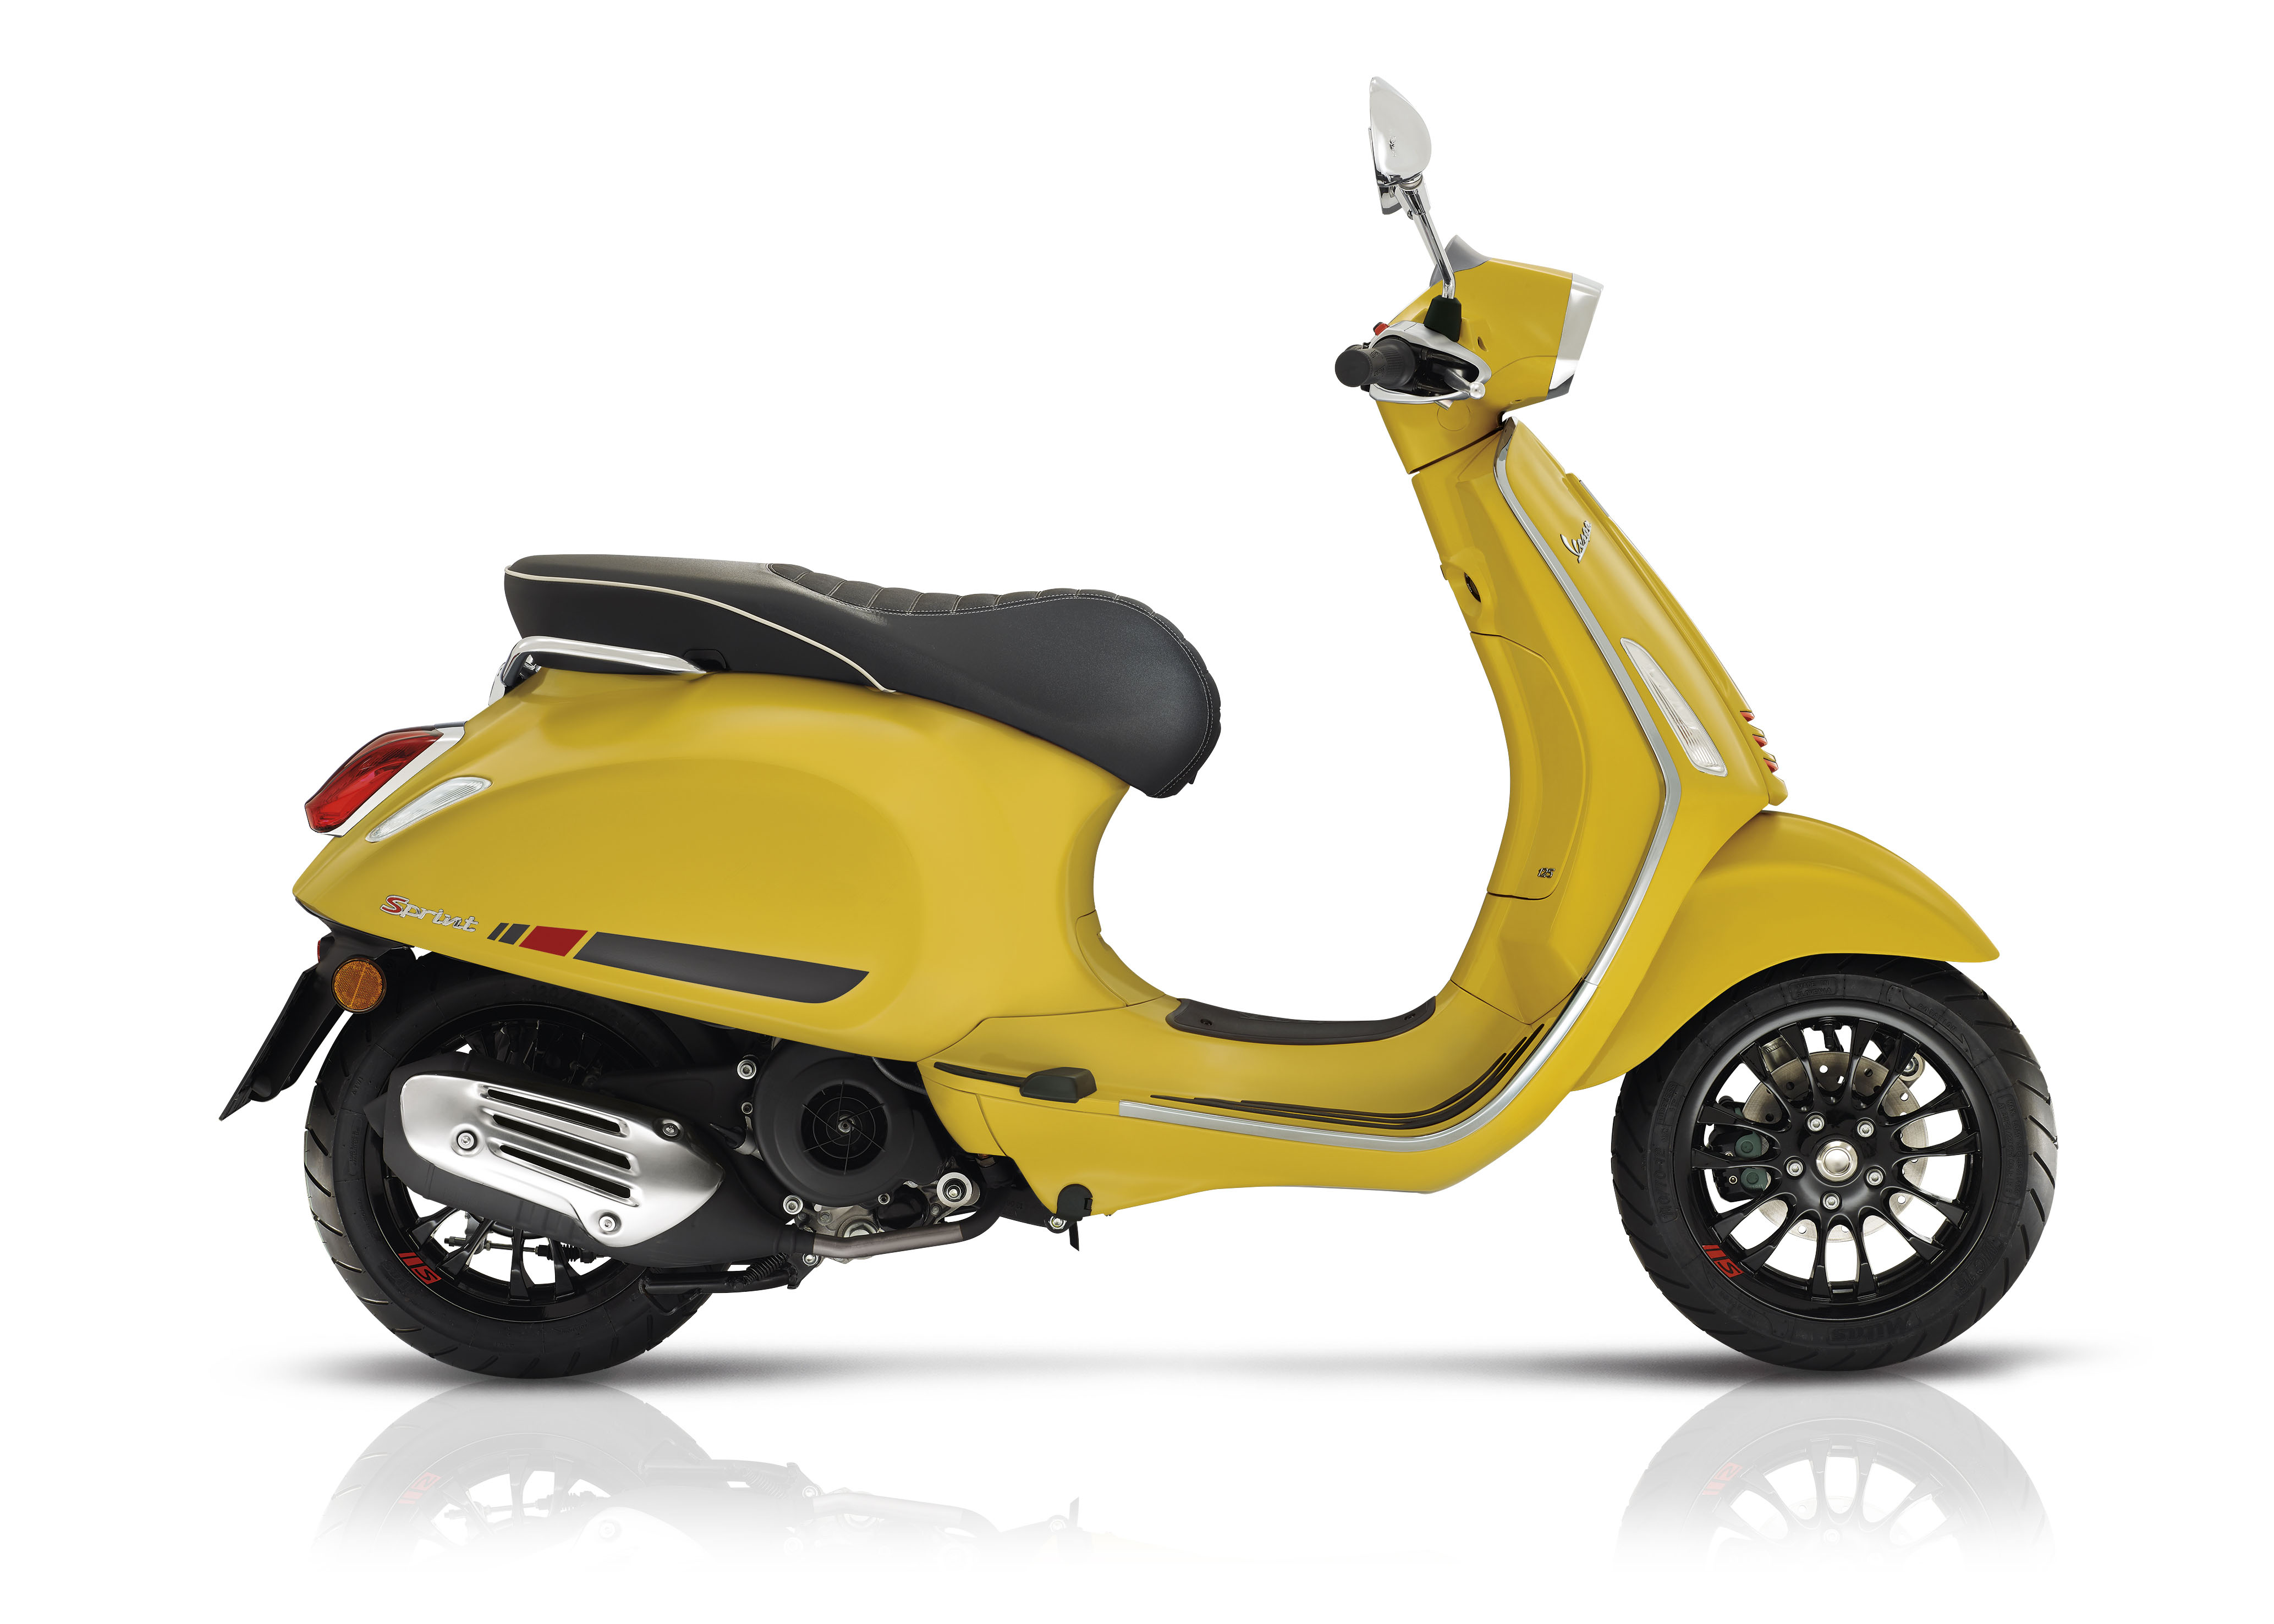 New 2018 Vespa Sprint S 150 Scooters in Elk Grove, CA | Stock Number: